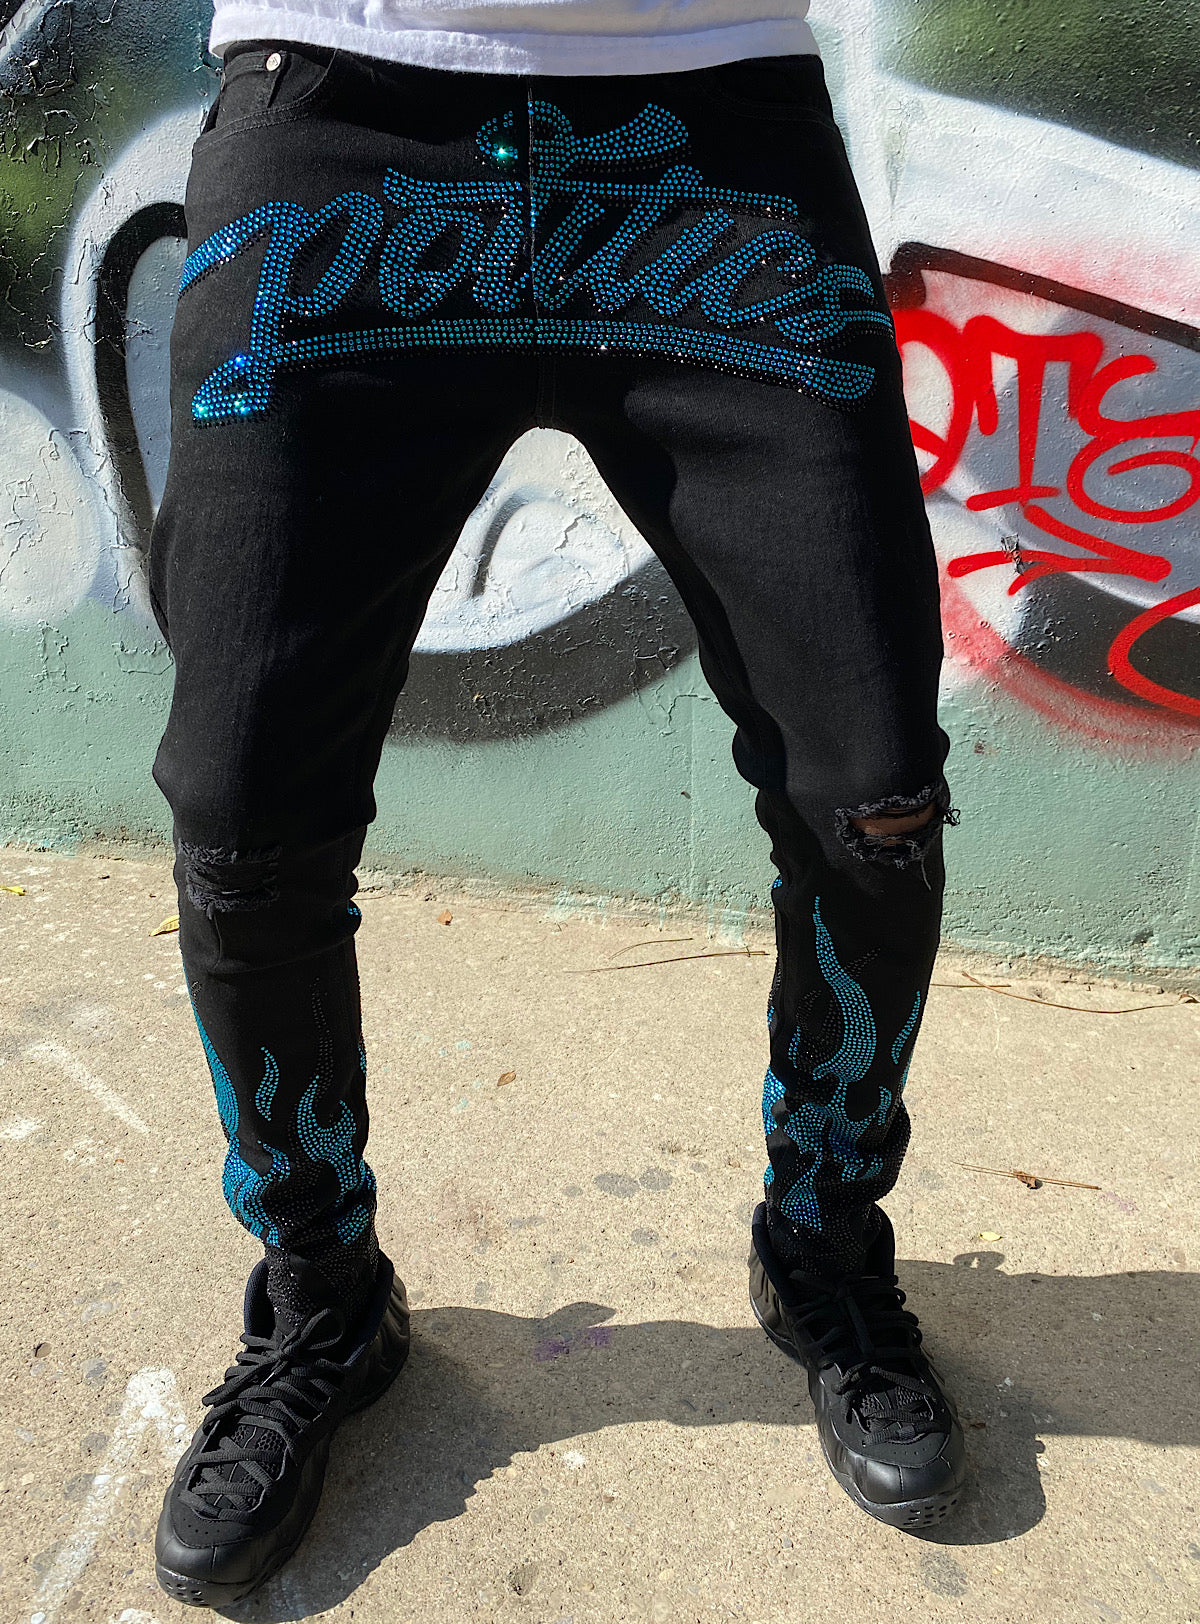 Politics Jeans - Stones and Flames - Black with Sky Blue and Jet Black - RSP 003